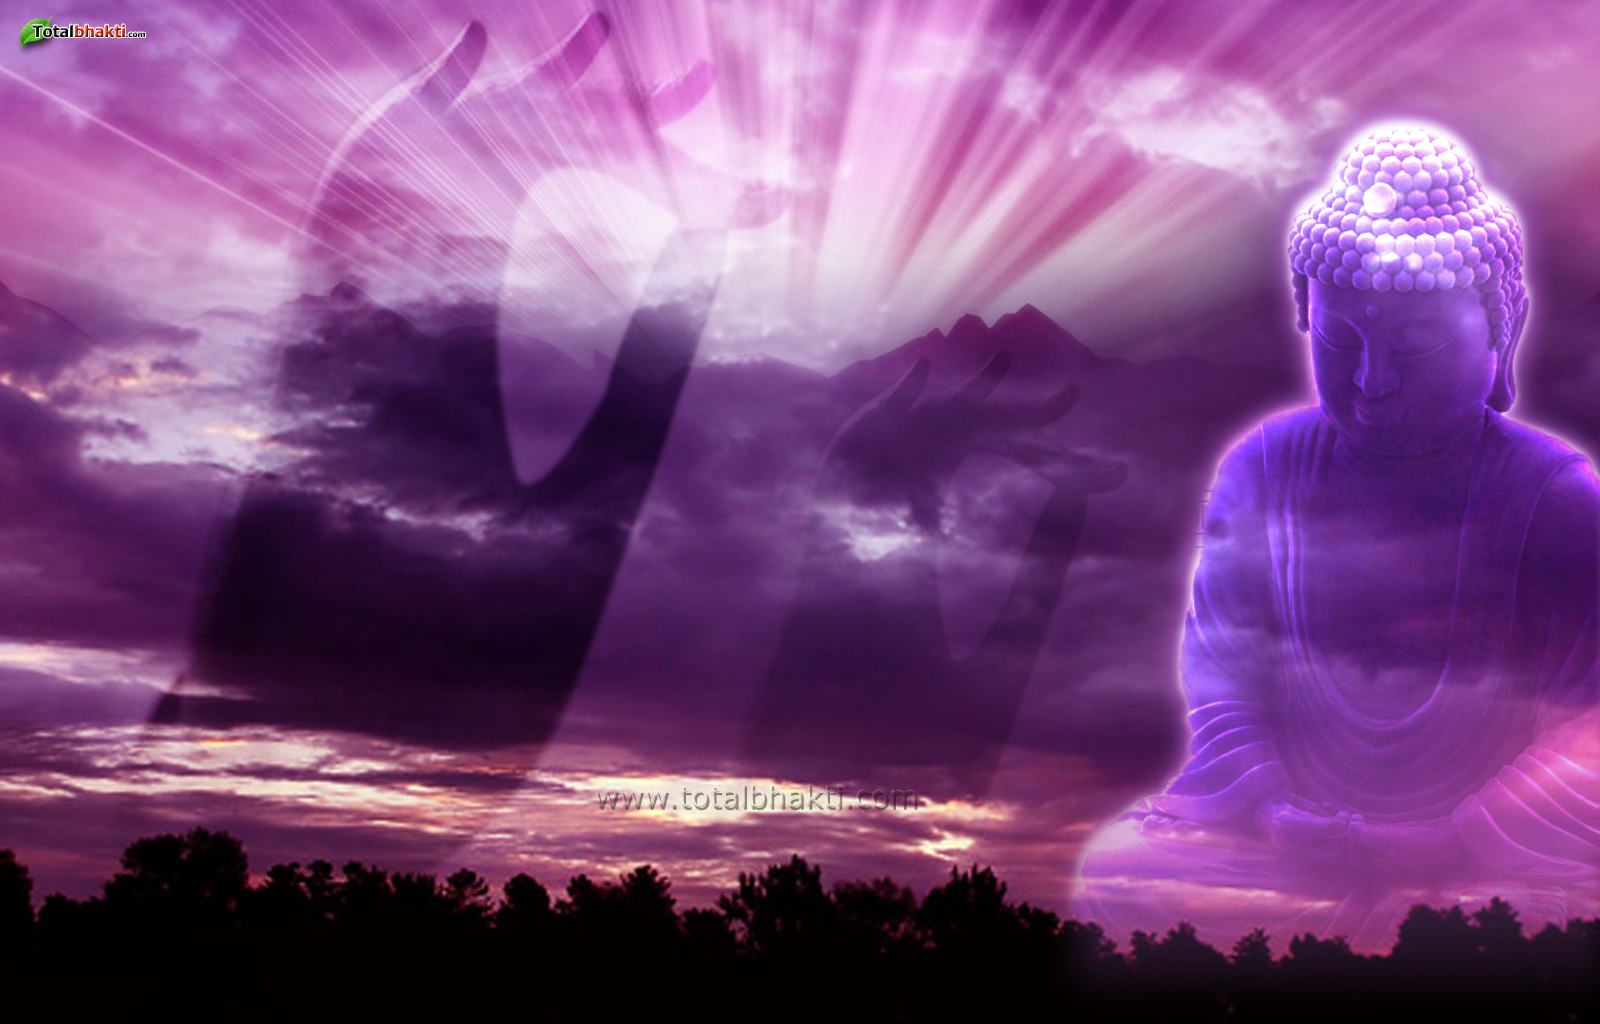 wallpaper Hindu wallpaper Buddha wallpaper purple color Download 1600x1024